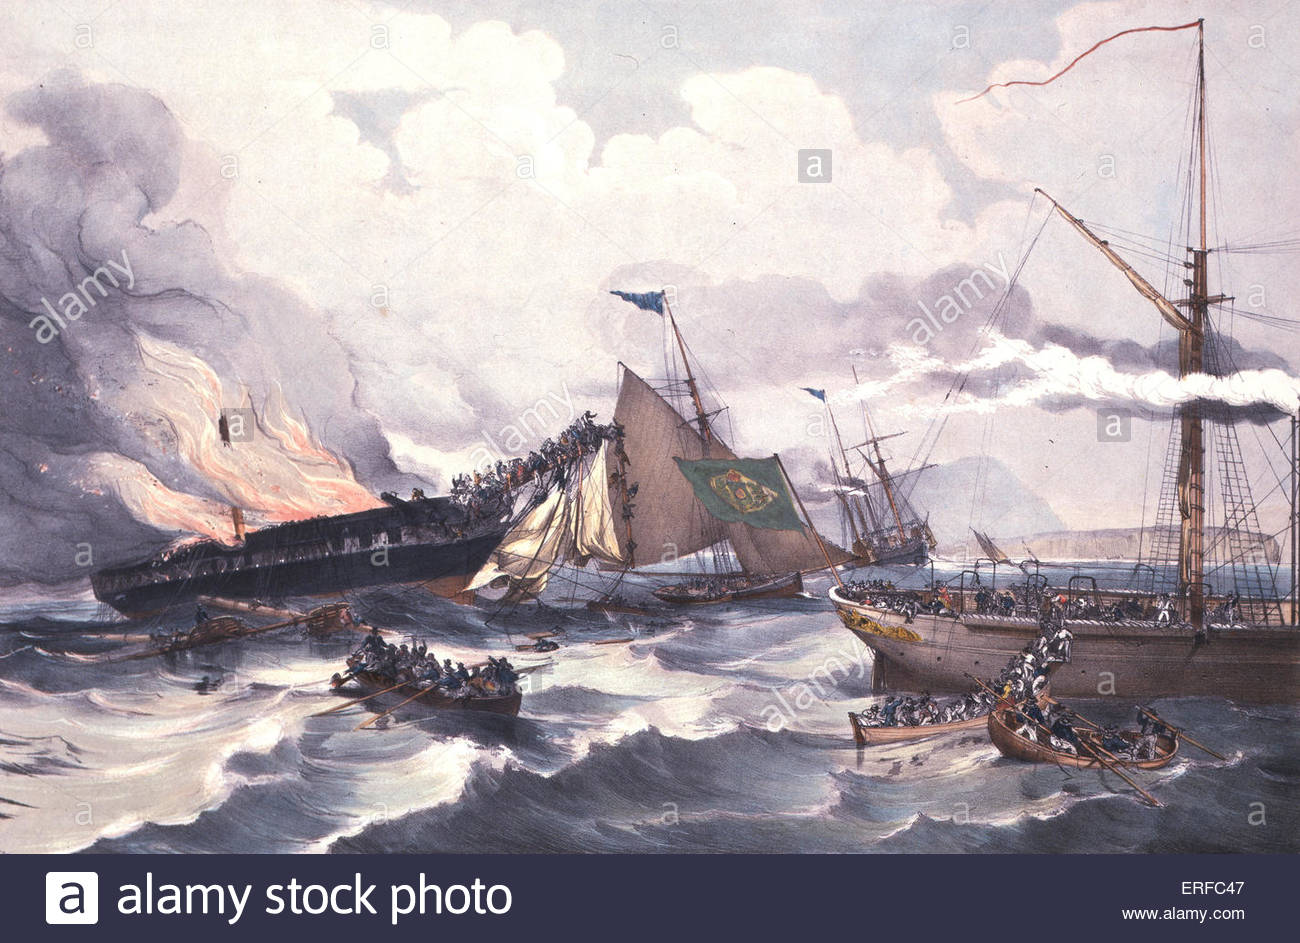 Destruction of the American Emigrant Ship Ocean Monarch, 24 August 1848. Courtesy of The Parker Gallery. - Stock Image